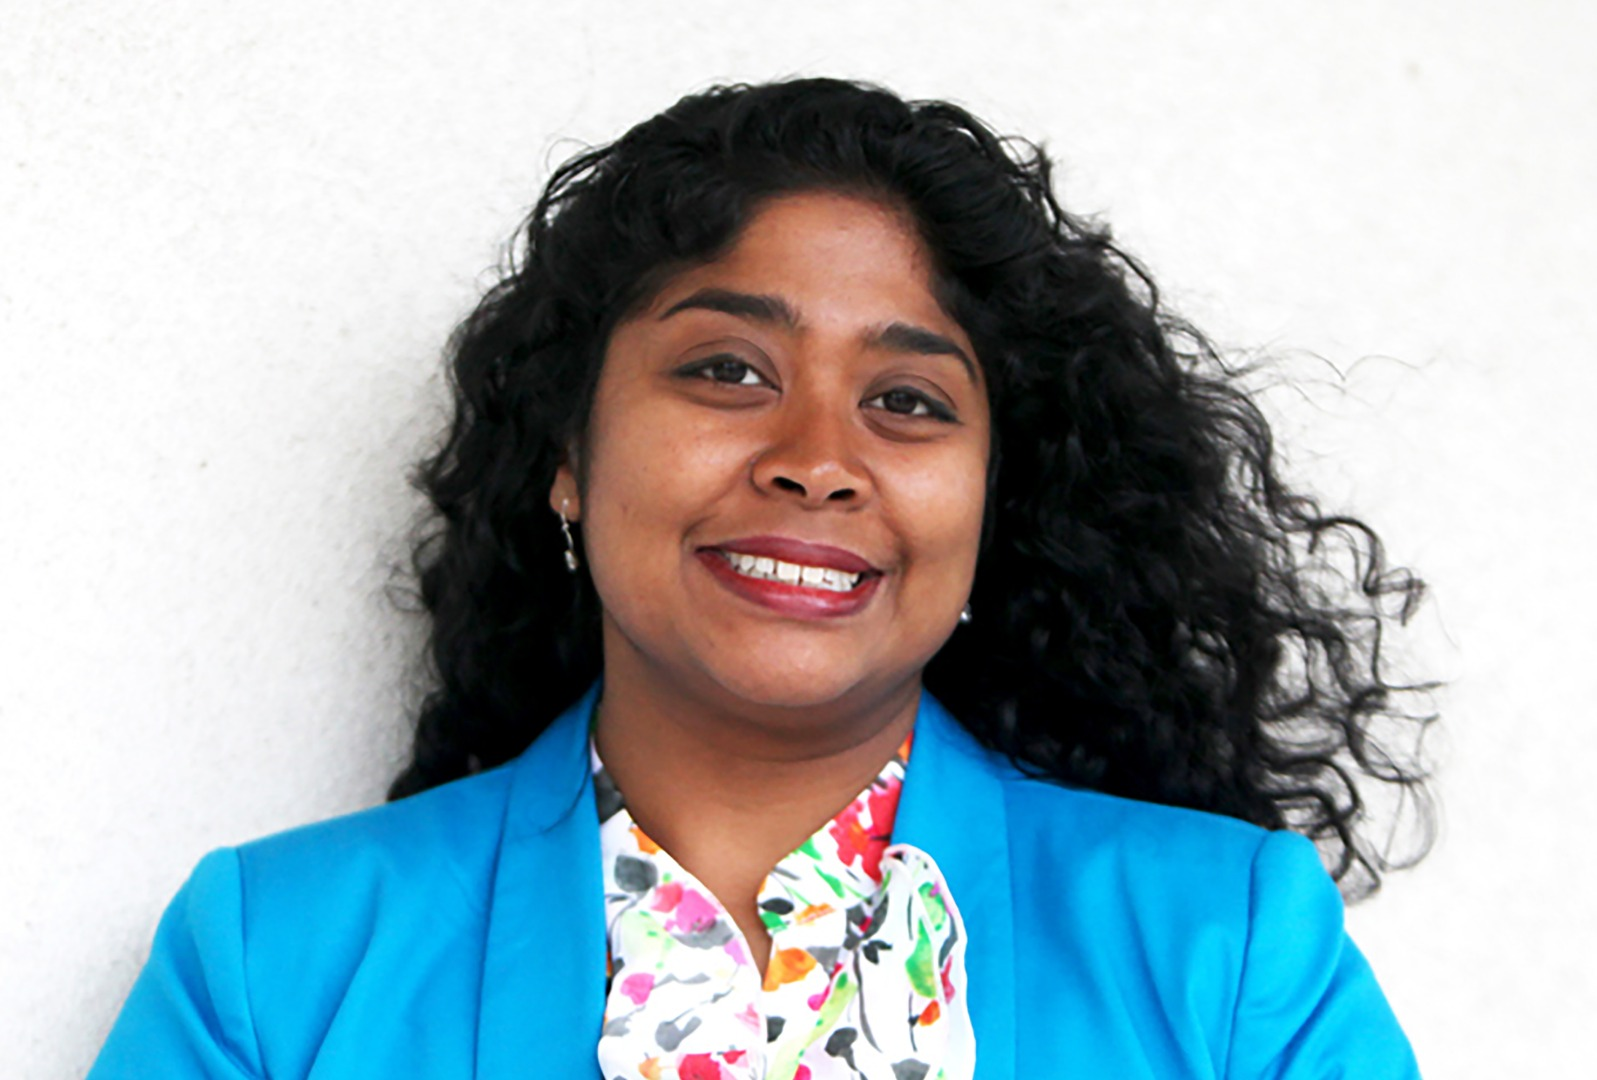 Lucy Nalpathanchil's Headshot